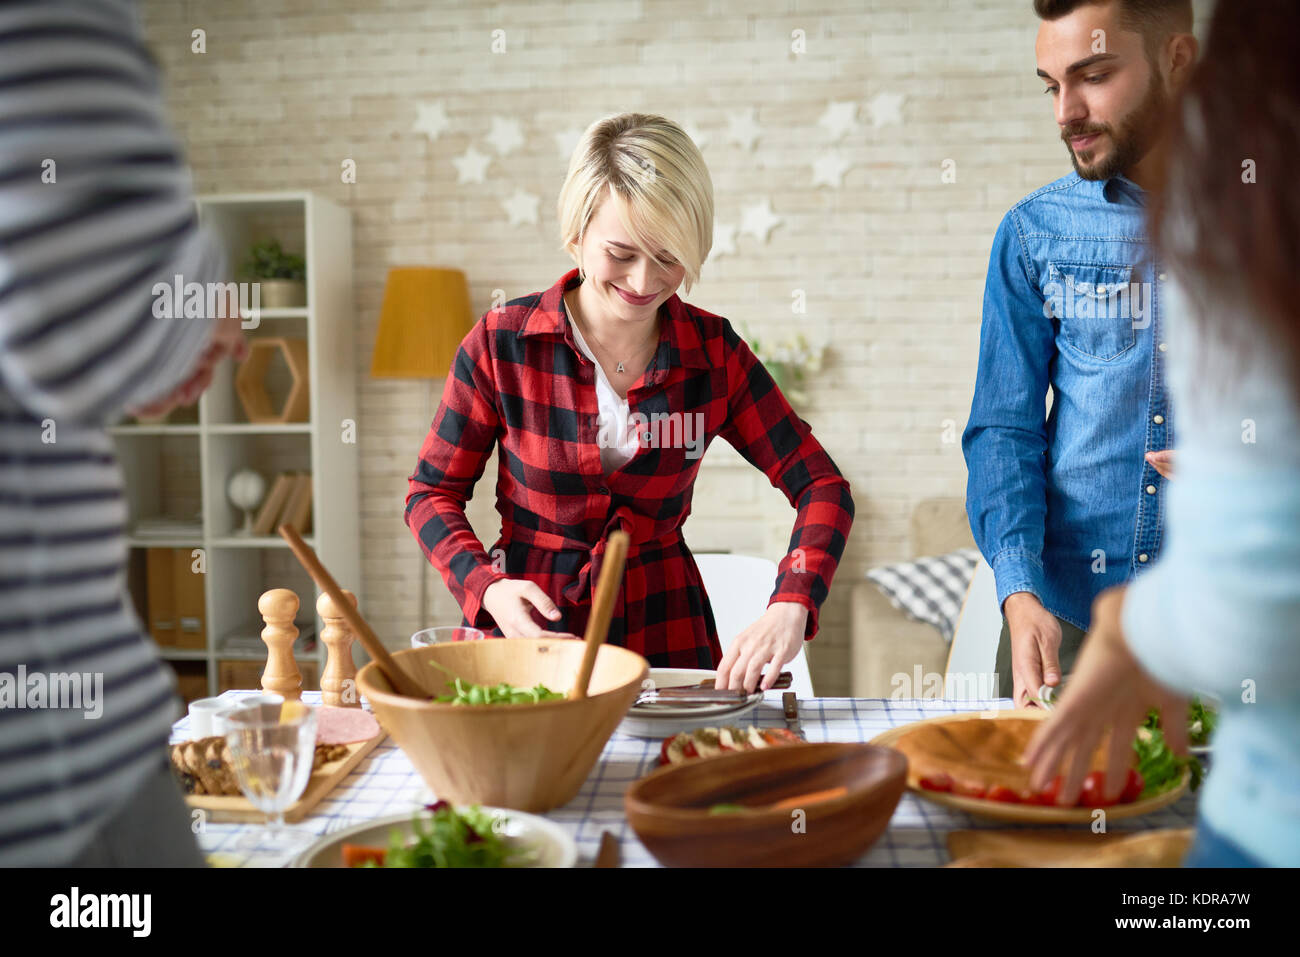 Young People Making Dinner Together - Stock Image